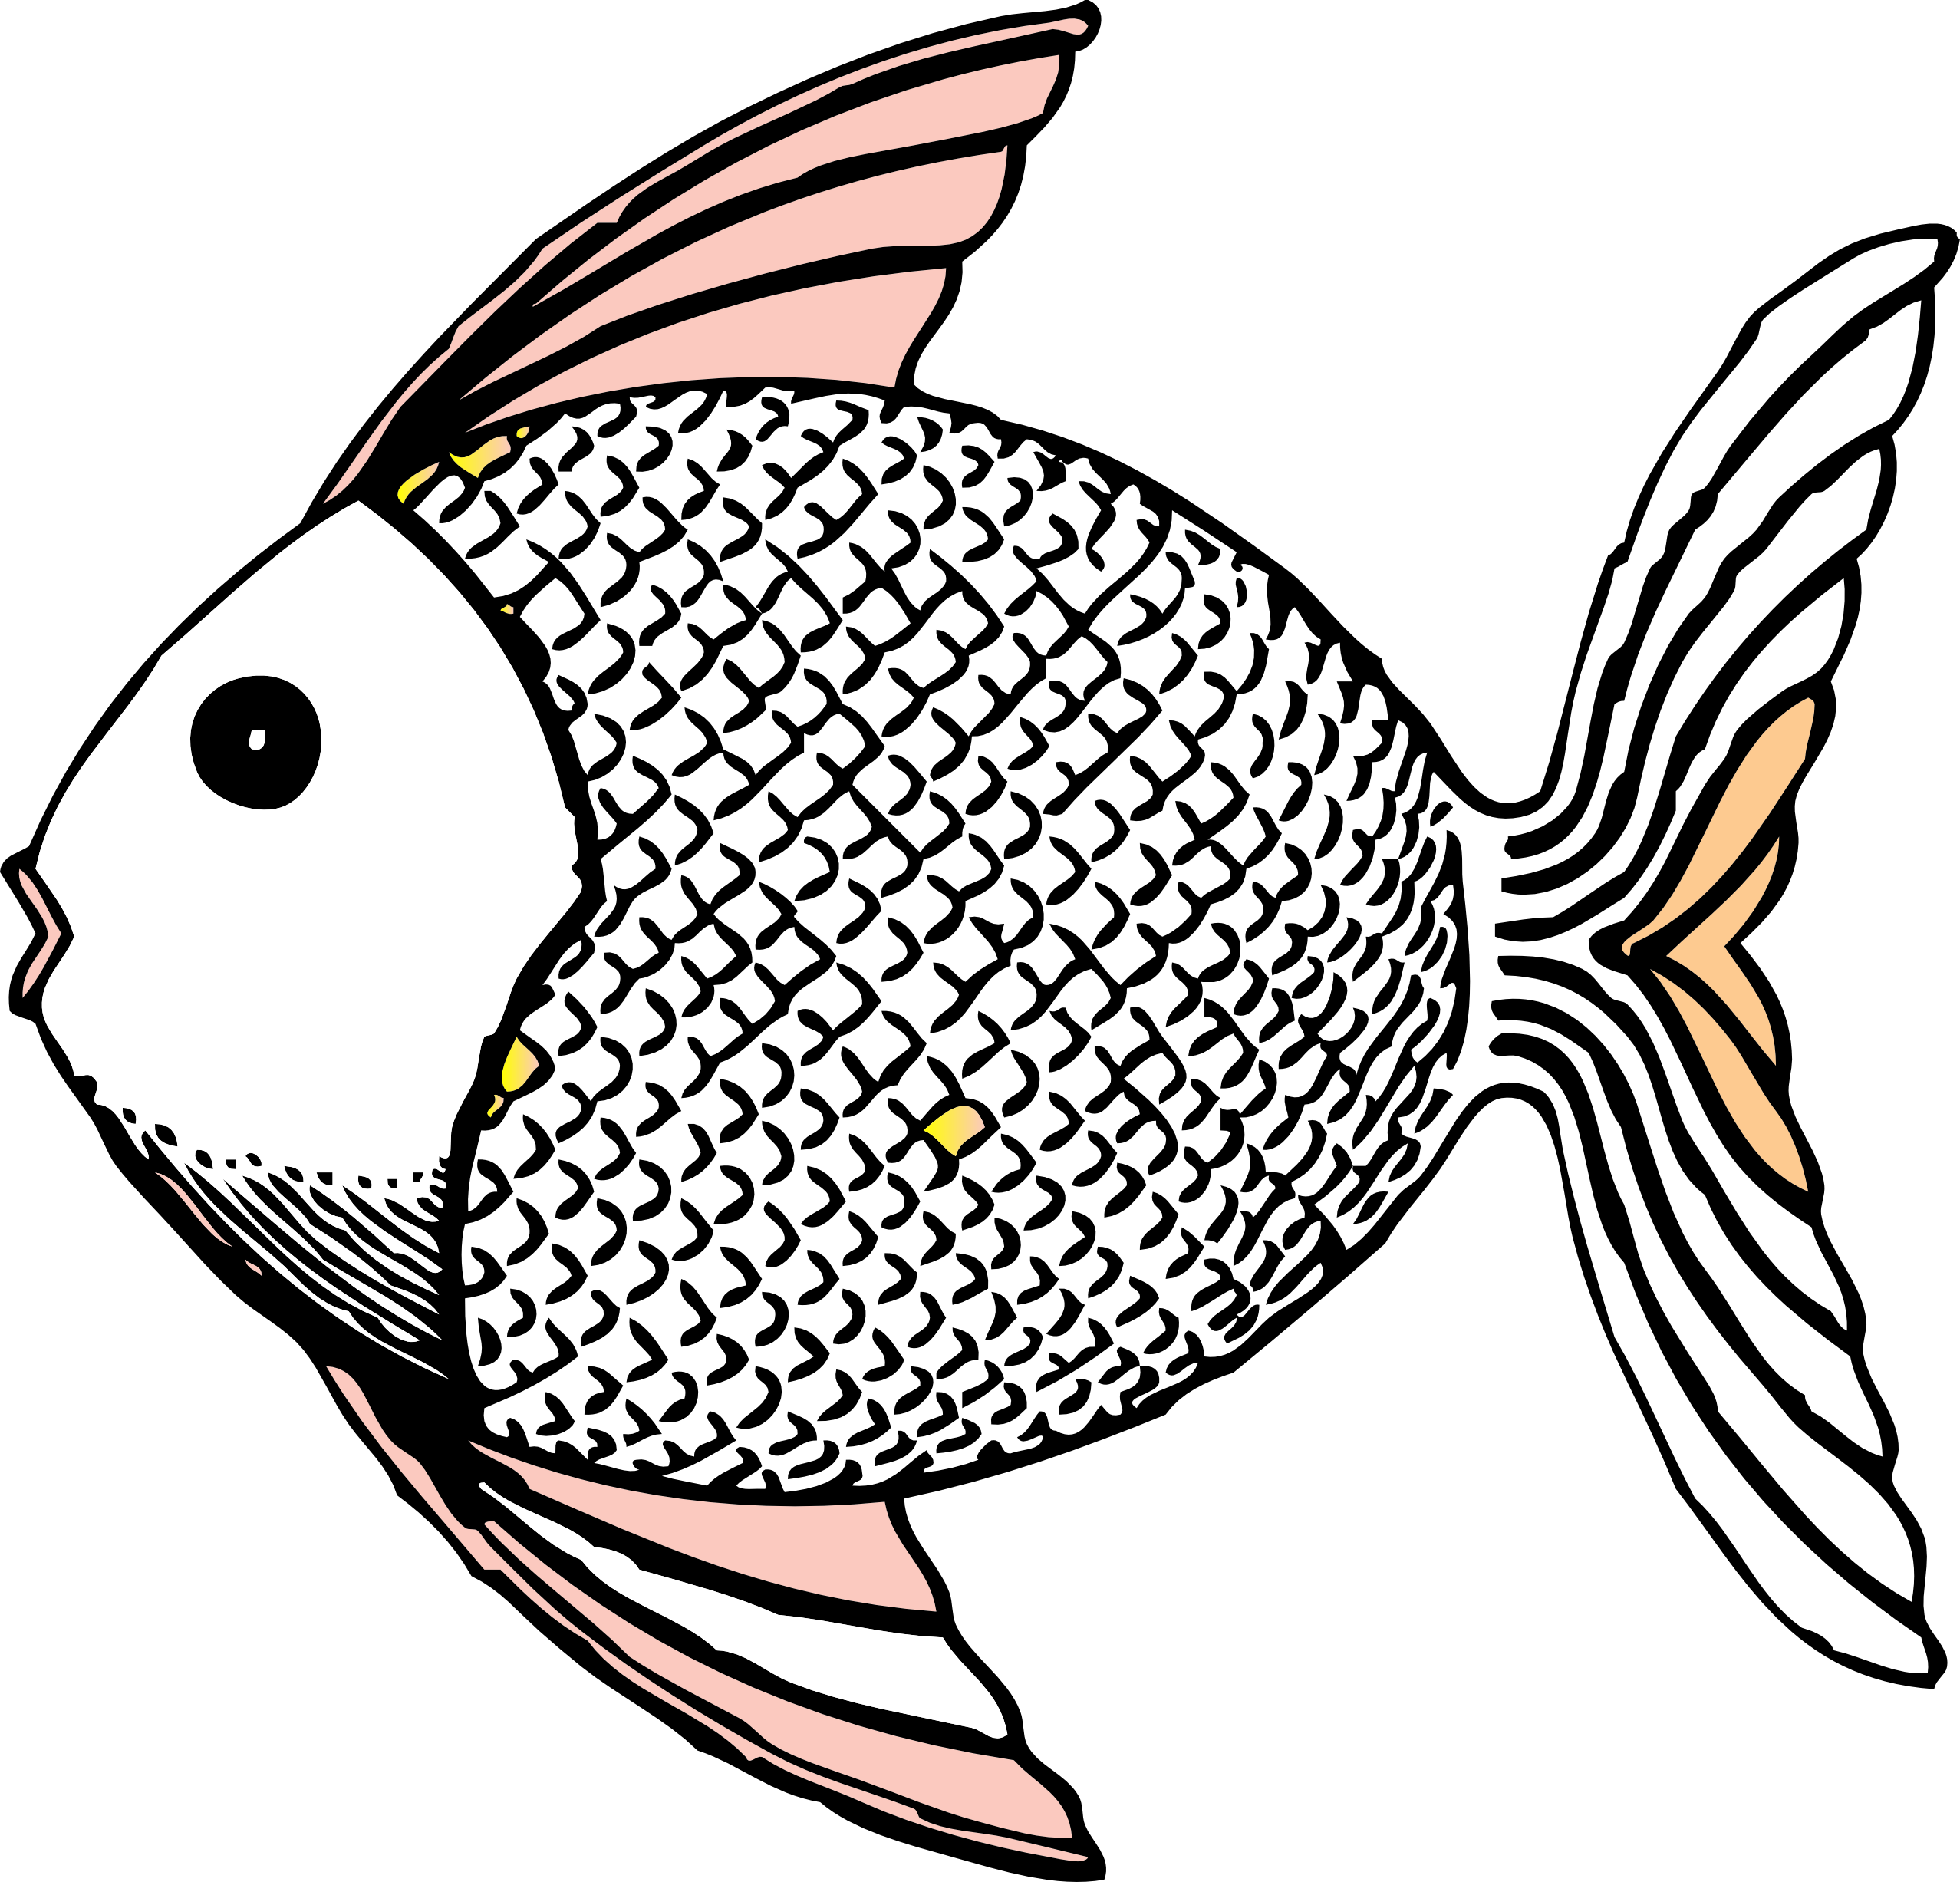 Cross and fish clipart clipart royalty free download Fish Clip Art Black and White | tropical fish black white line art ... clipart royalty free download